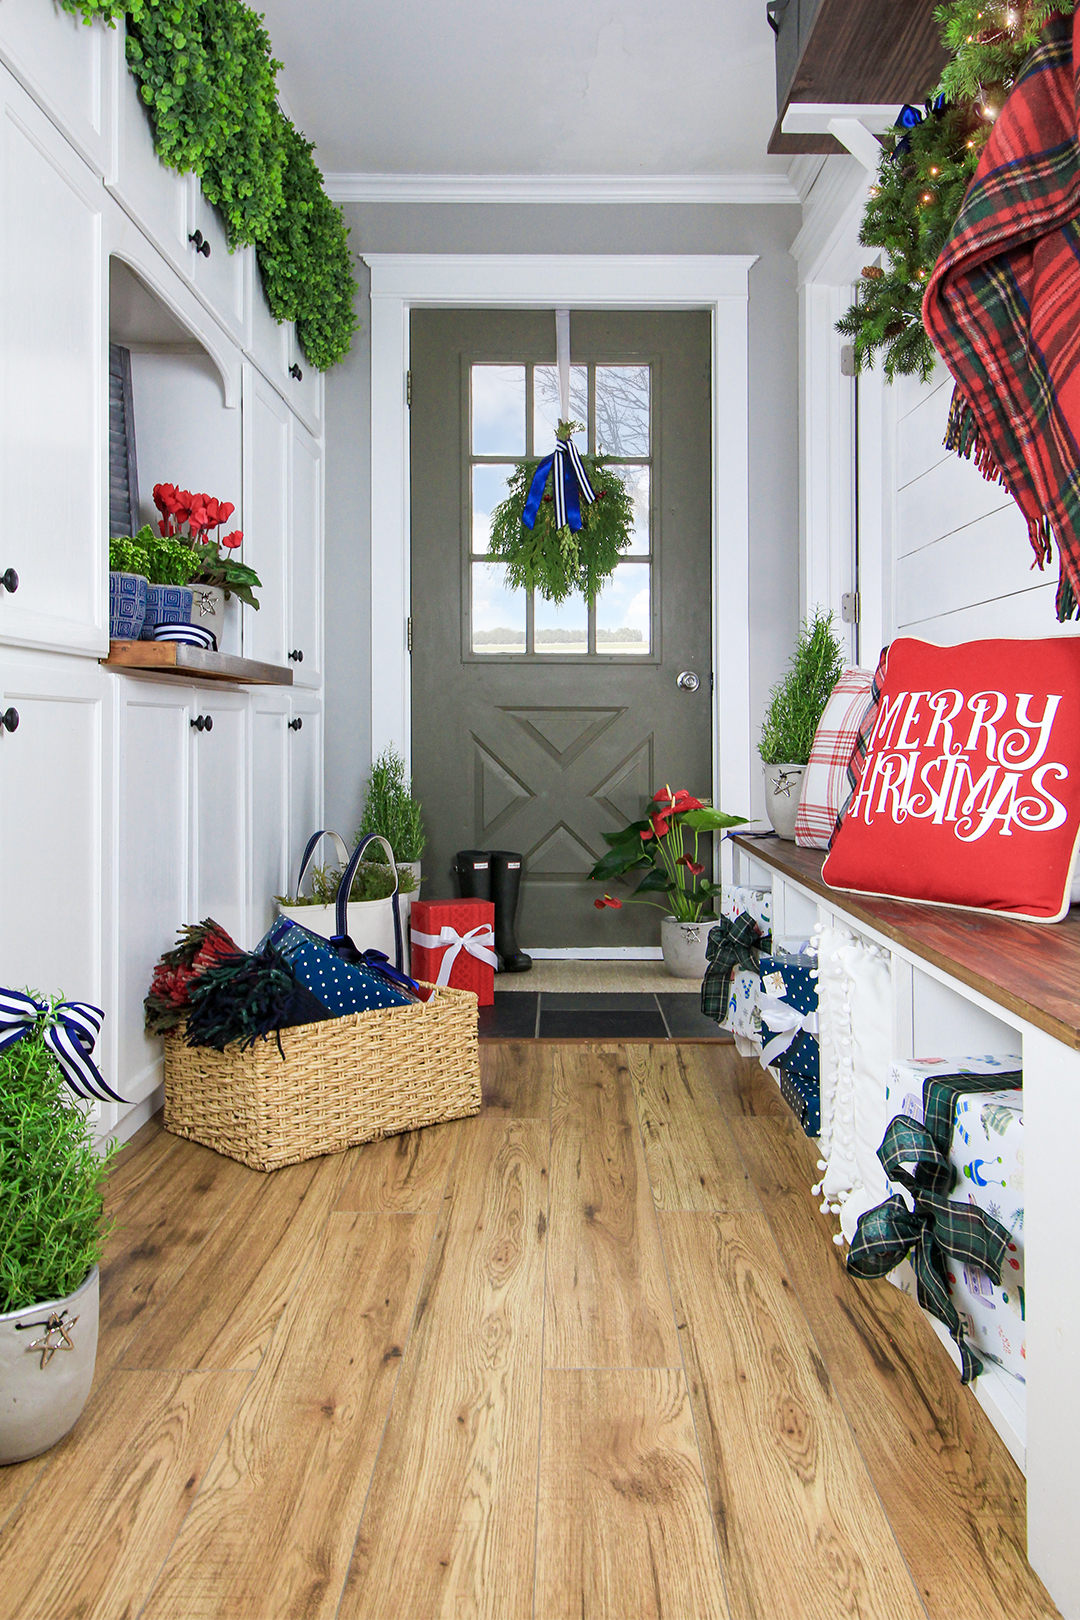 Whether it's for a kitchen, entryway, office, or anywhere else in your home, there's just something so festive and charming about this look. Here's how to hang wreaths on cabinet doors!